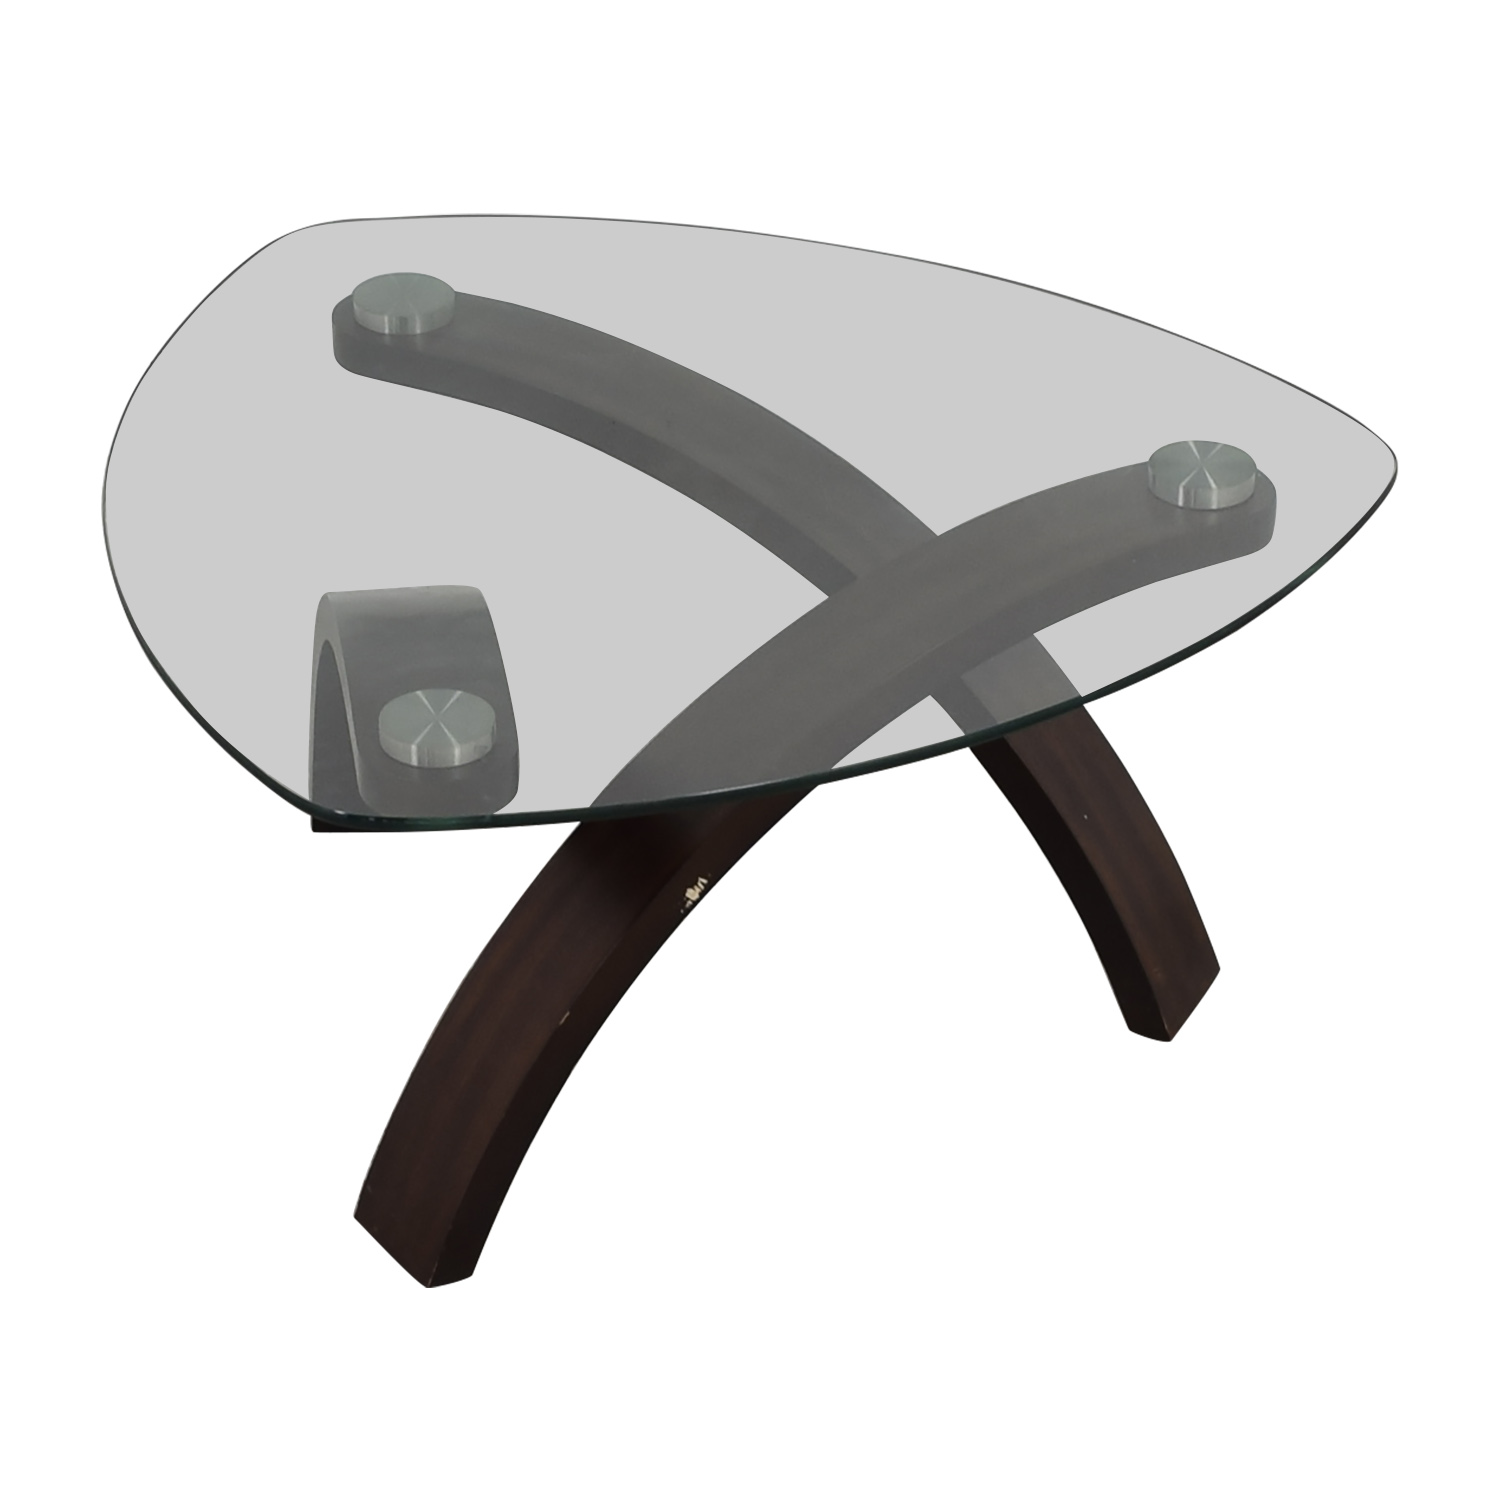 shop Raymour & Flanigan Raymour & Flanigan Modern Coffee Table online